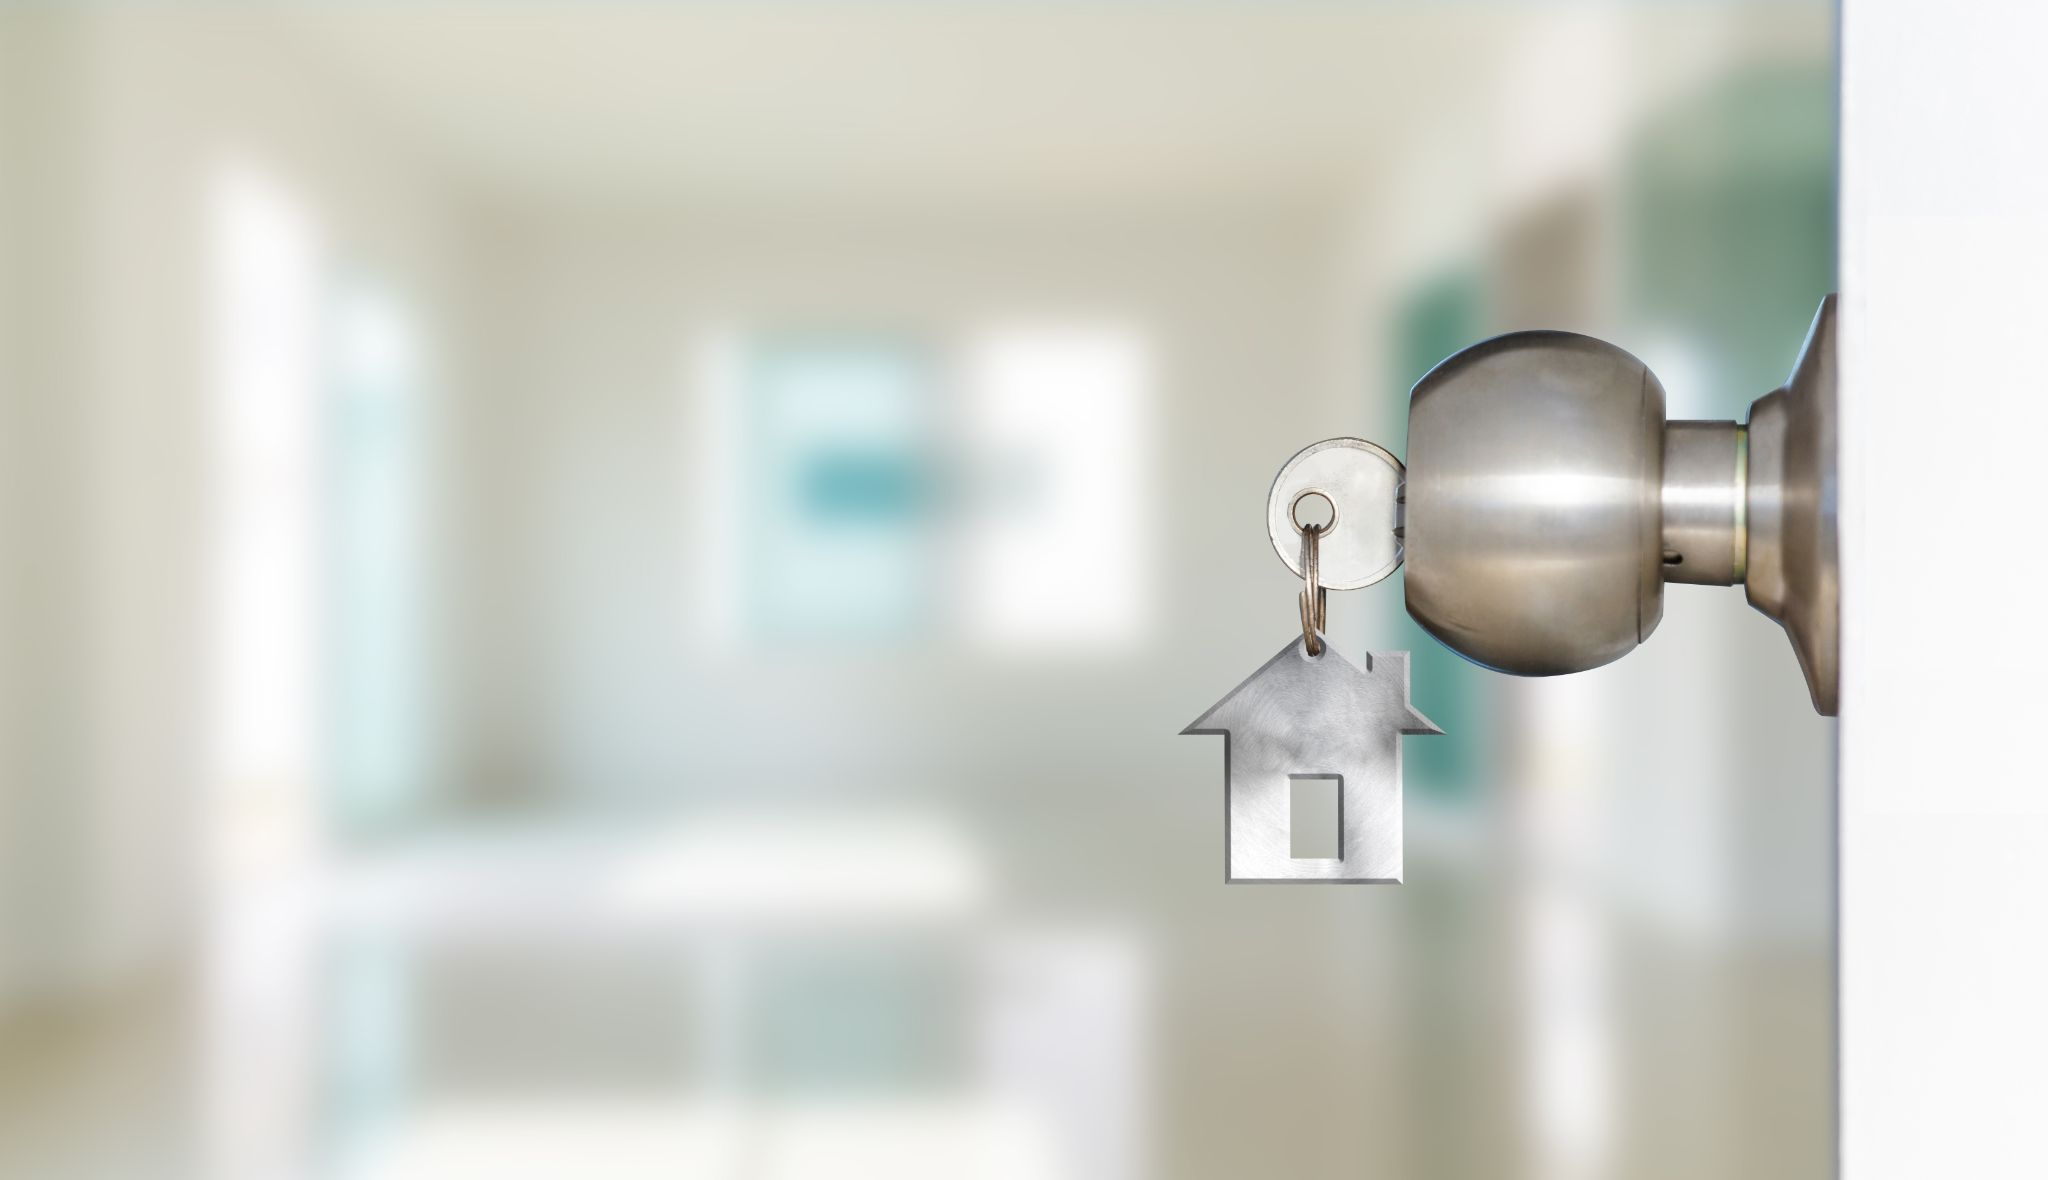 door knob with keys hanging out of them and blurry background